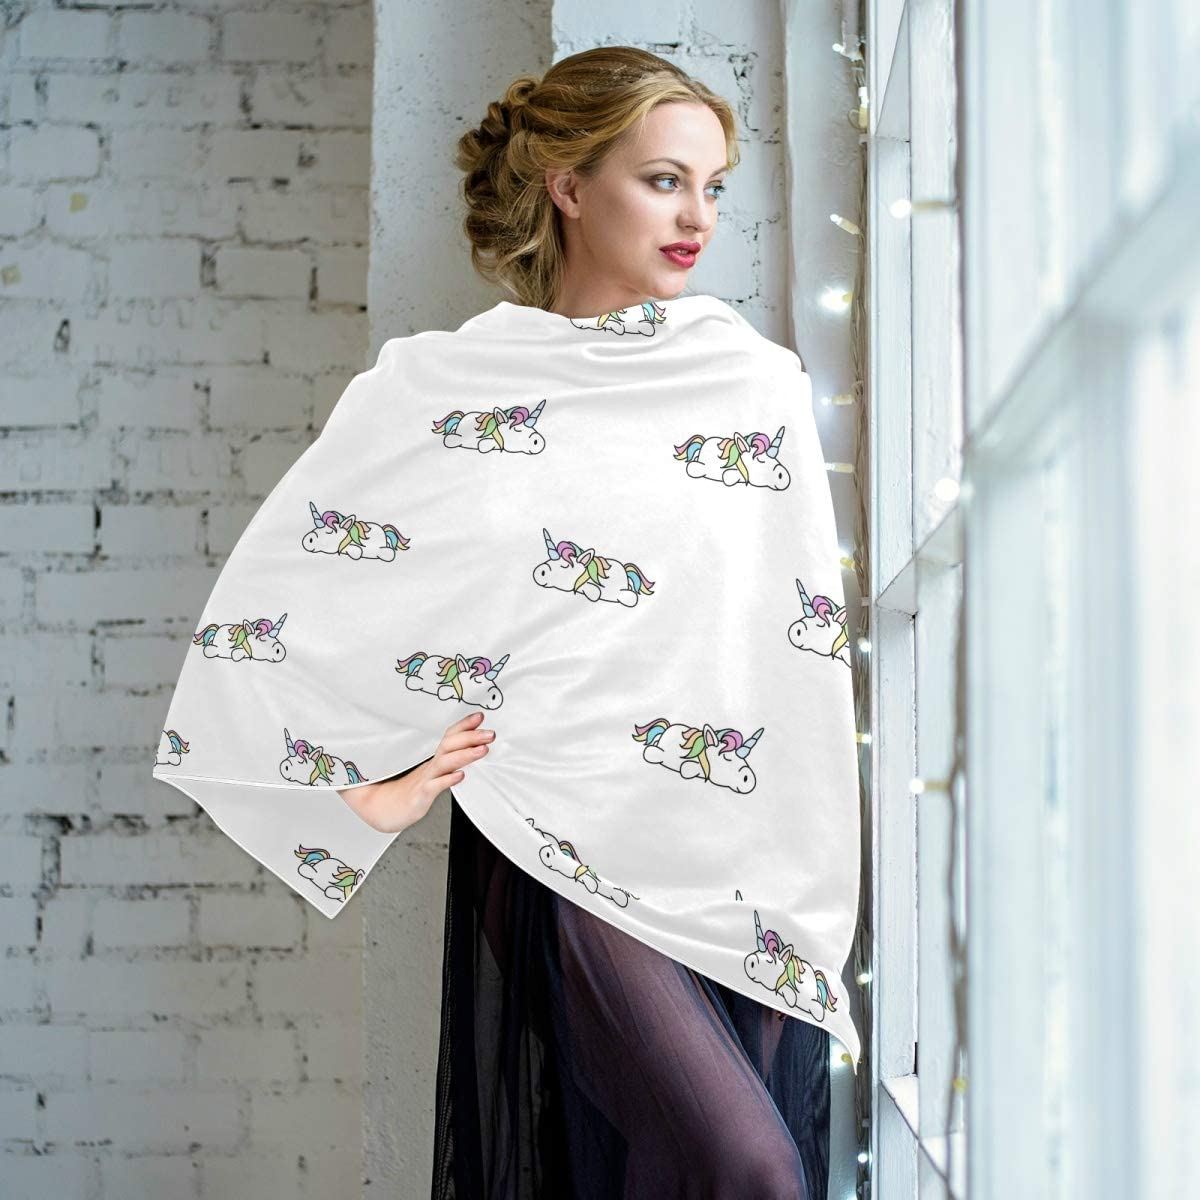 Scarf for Women and Men Unicorn Cute Blanket Shawl Scarf wraps Soft warm Winter Oversized Scarves Lightweight